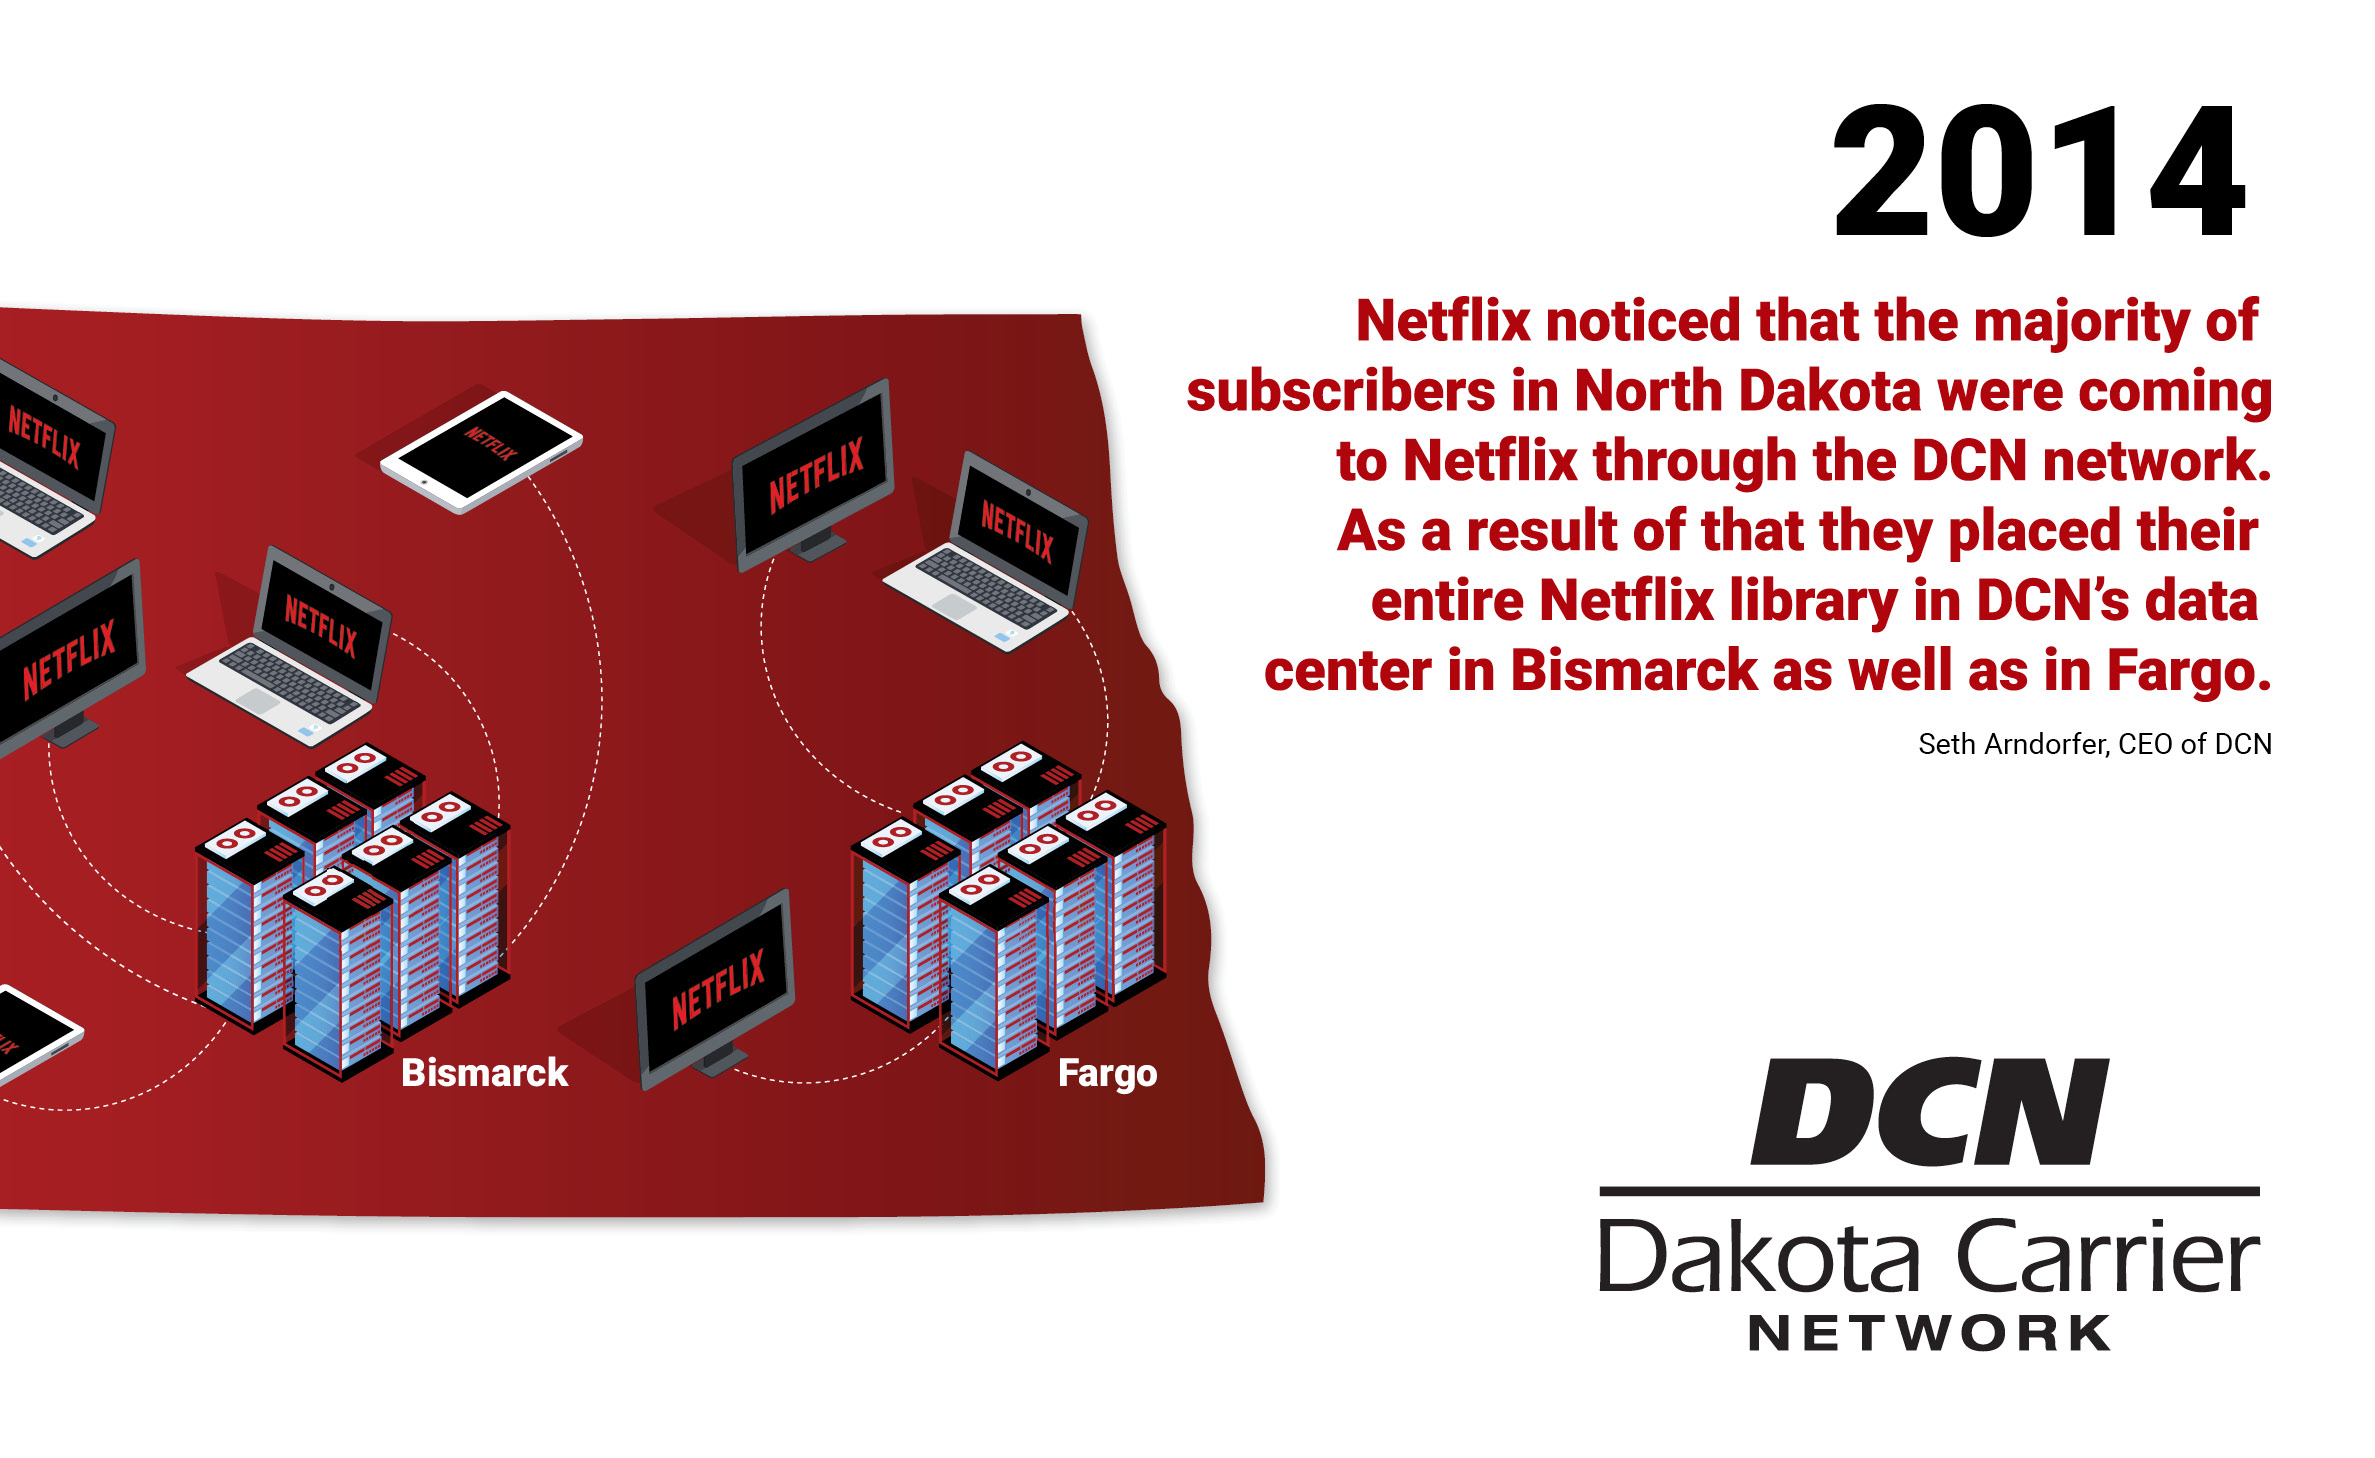 Netflix and the DCN Network